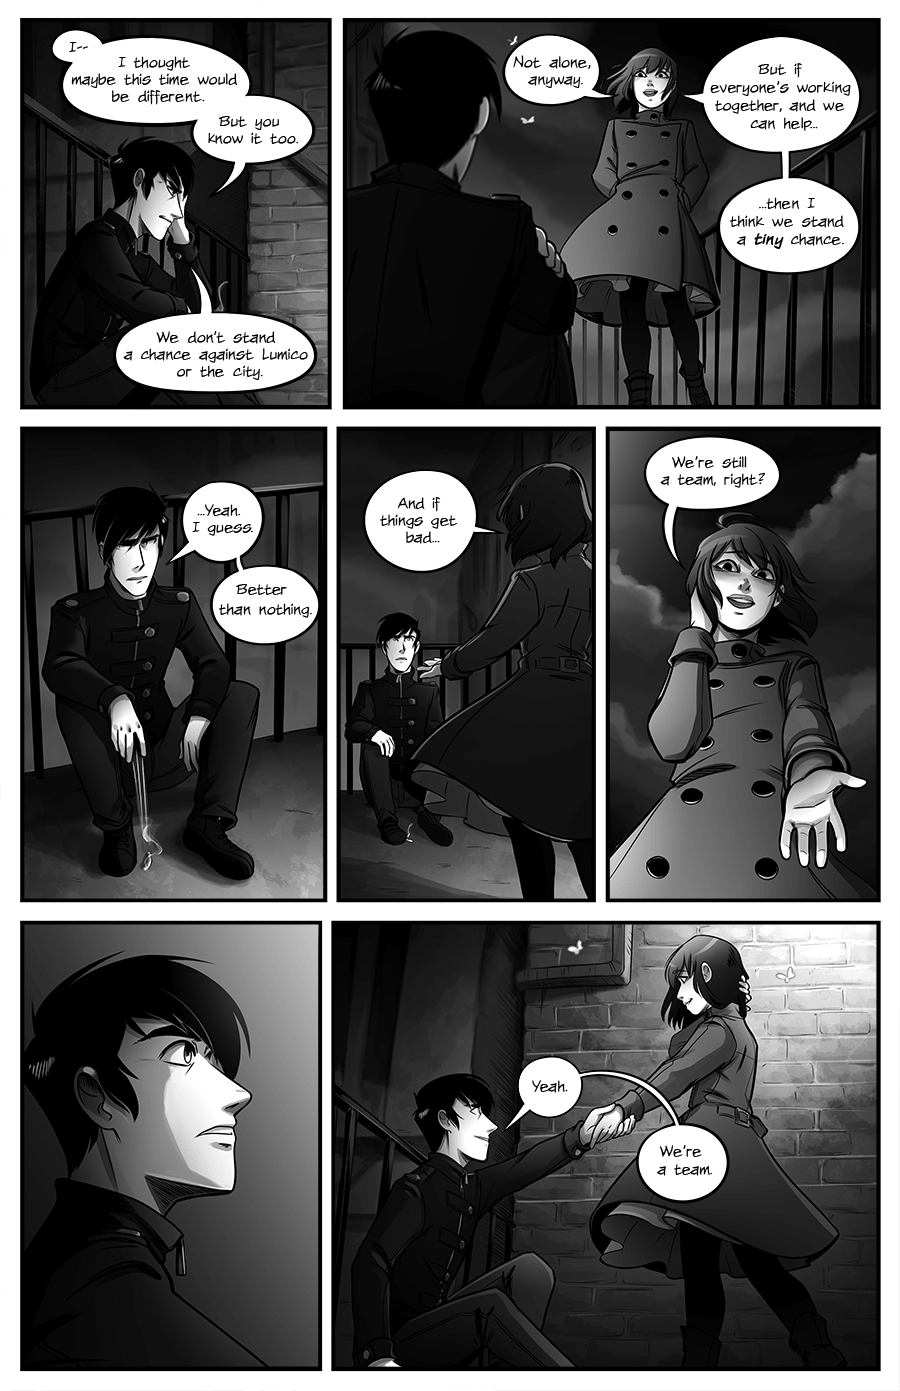 Ch 3 Page 35